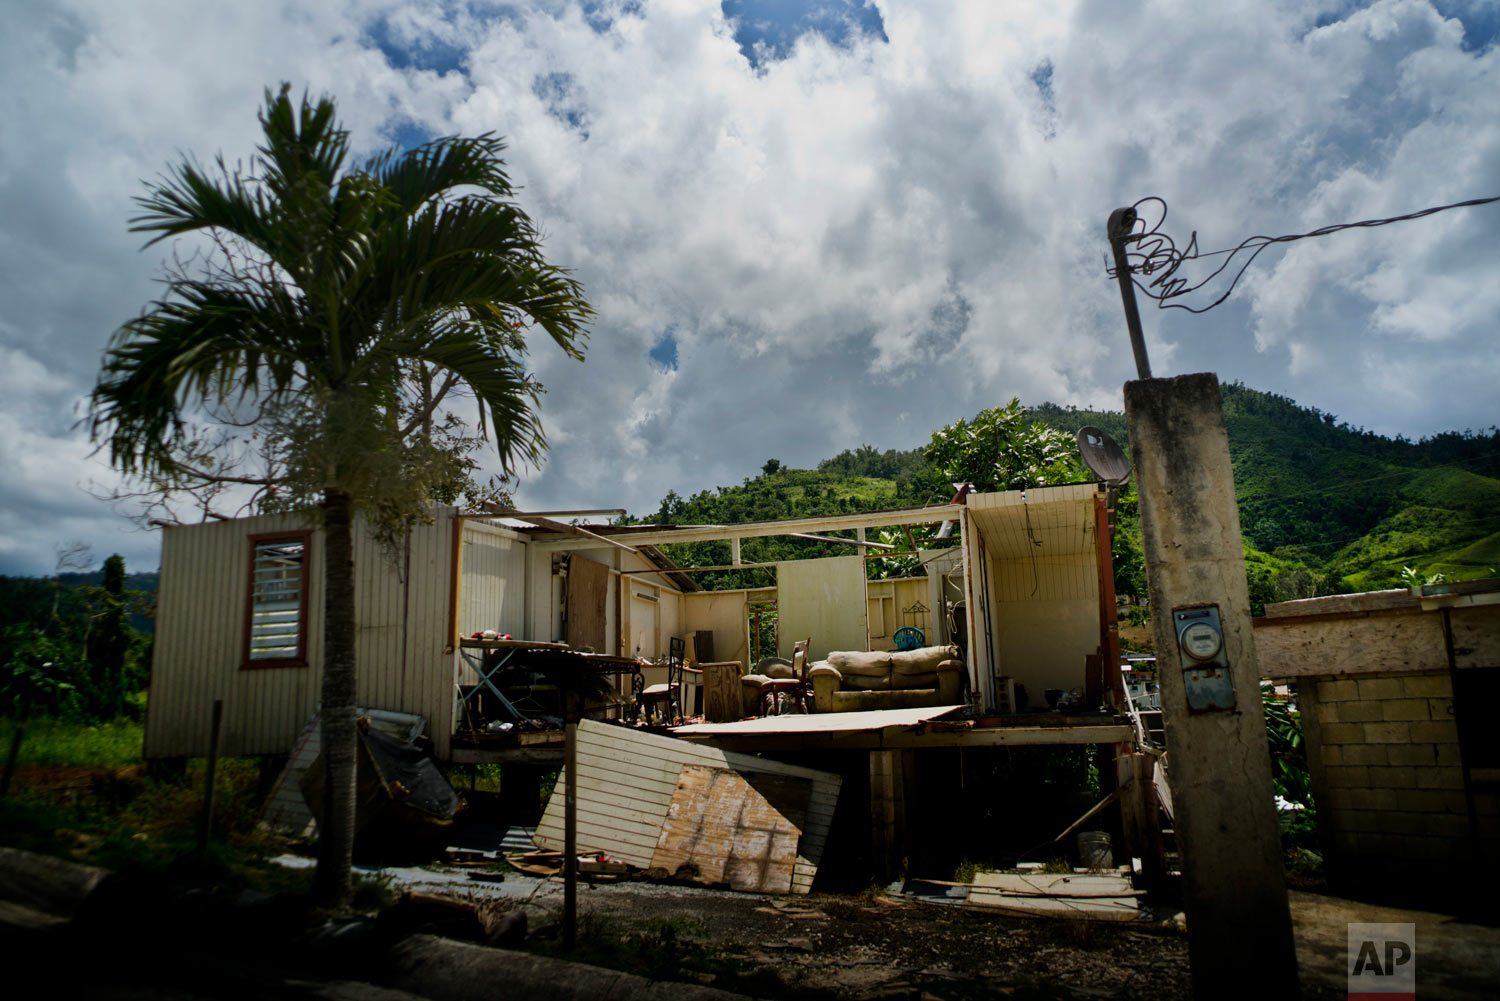 In this Sept. 8, 2018 photo, a home abandoned after Hurricane Maria hit one year ago stands full of furniture in the San Lorenzo neighborhood of Morovis, Puerto Rico. (AP Photo/Ramon Espinosa)